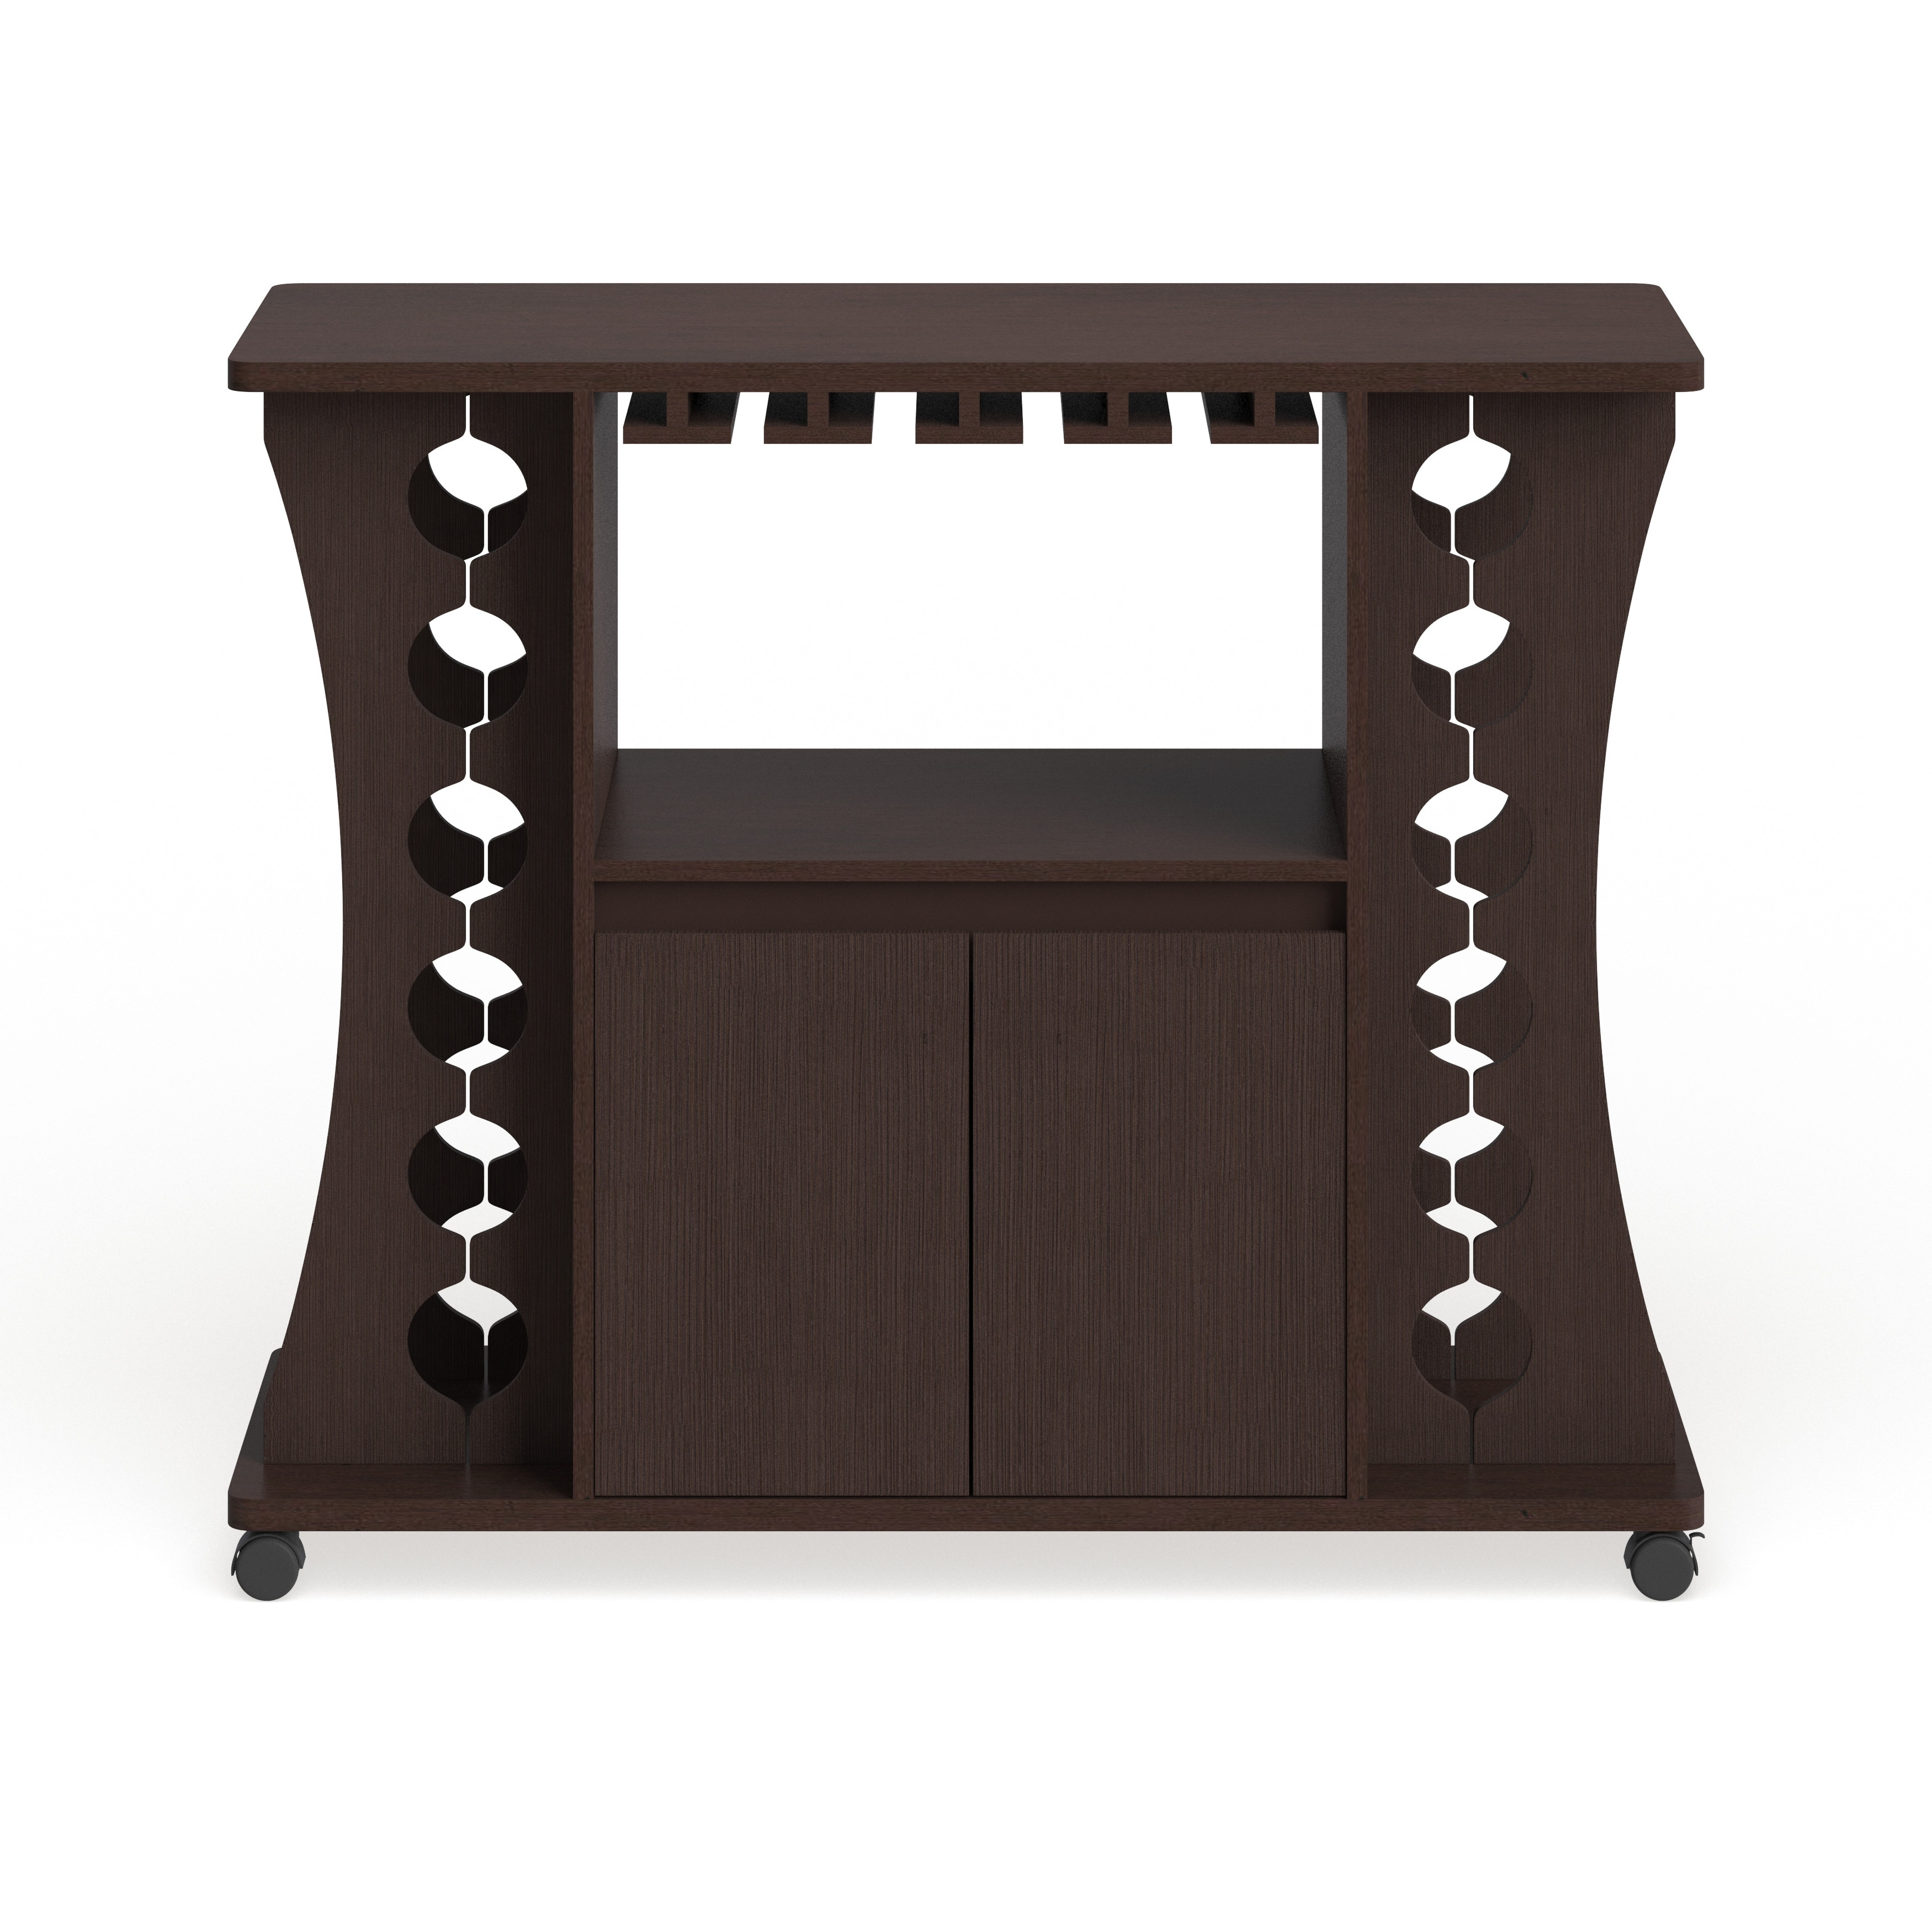 Shop Black Friday Deals On Furniture Of America Modern Espresso Buffet With Wine Rack Overstock 20254960